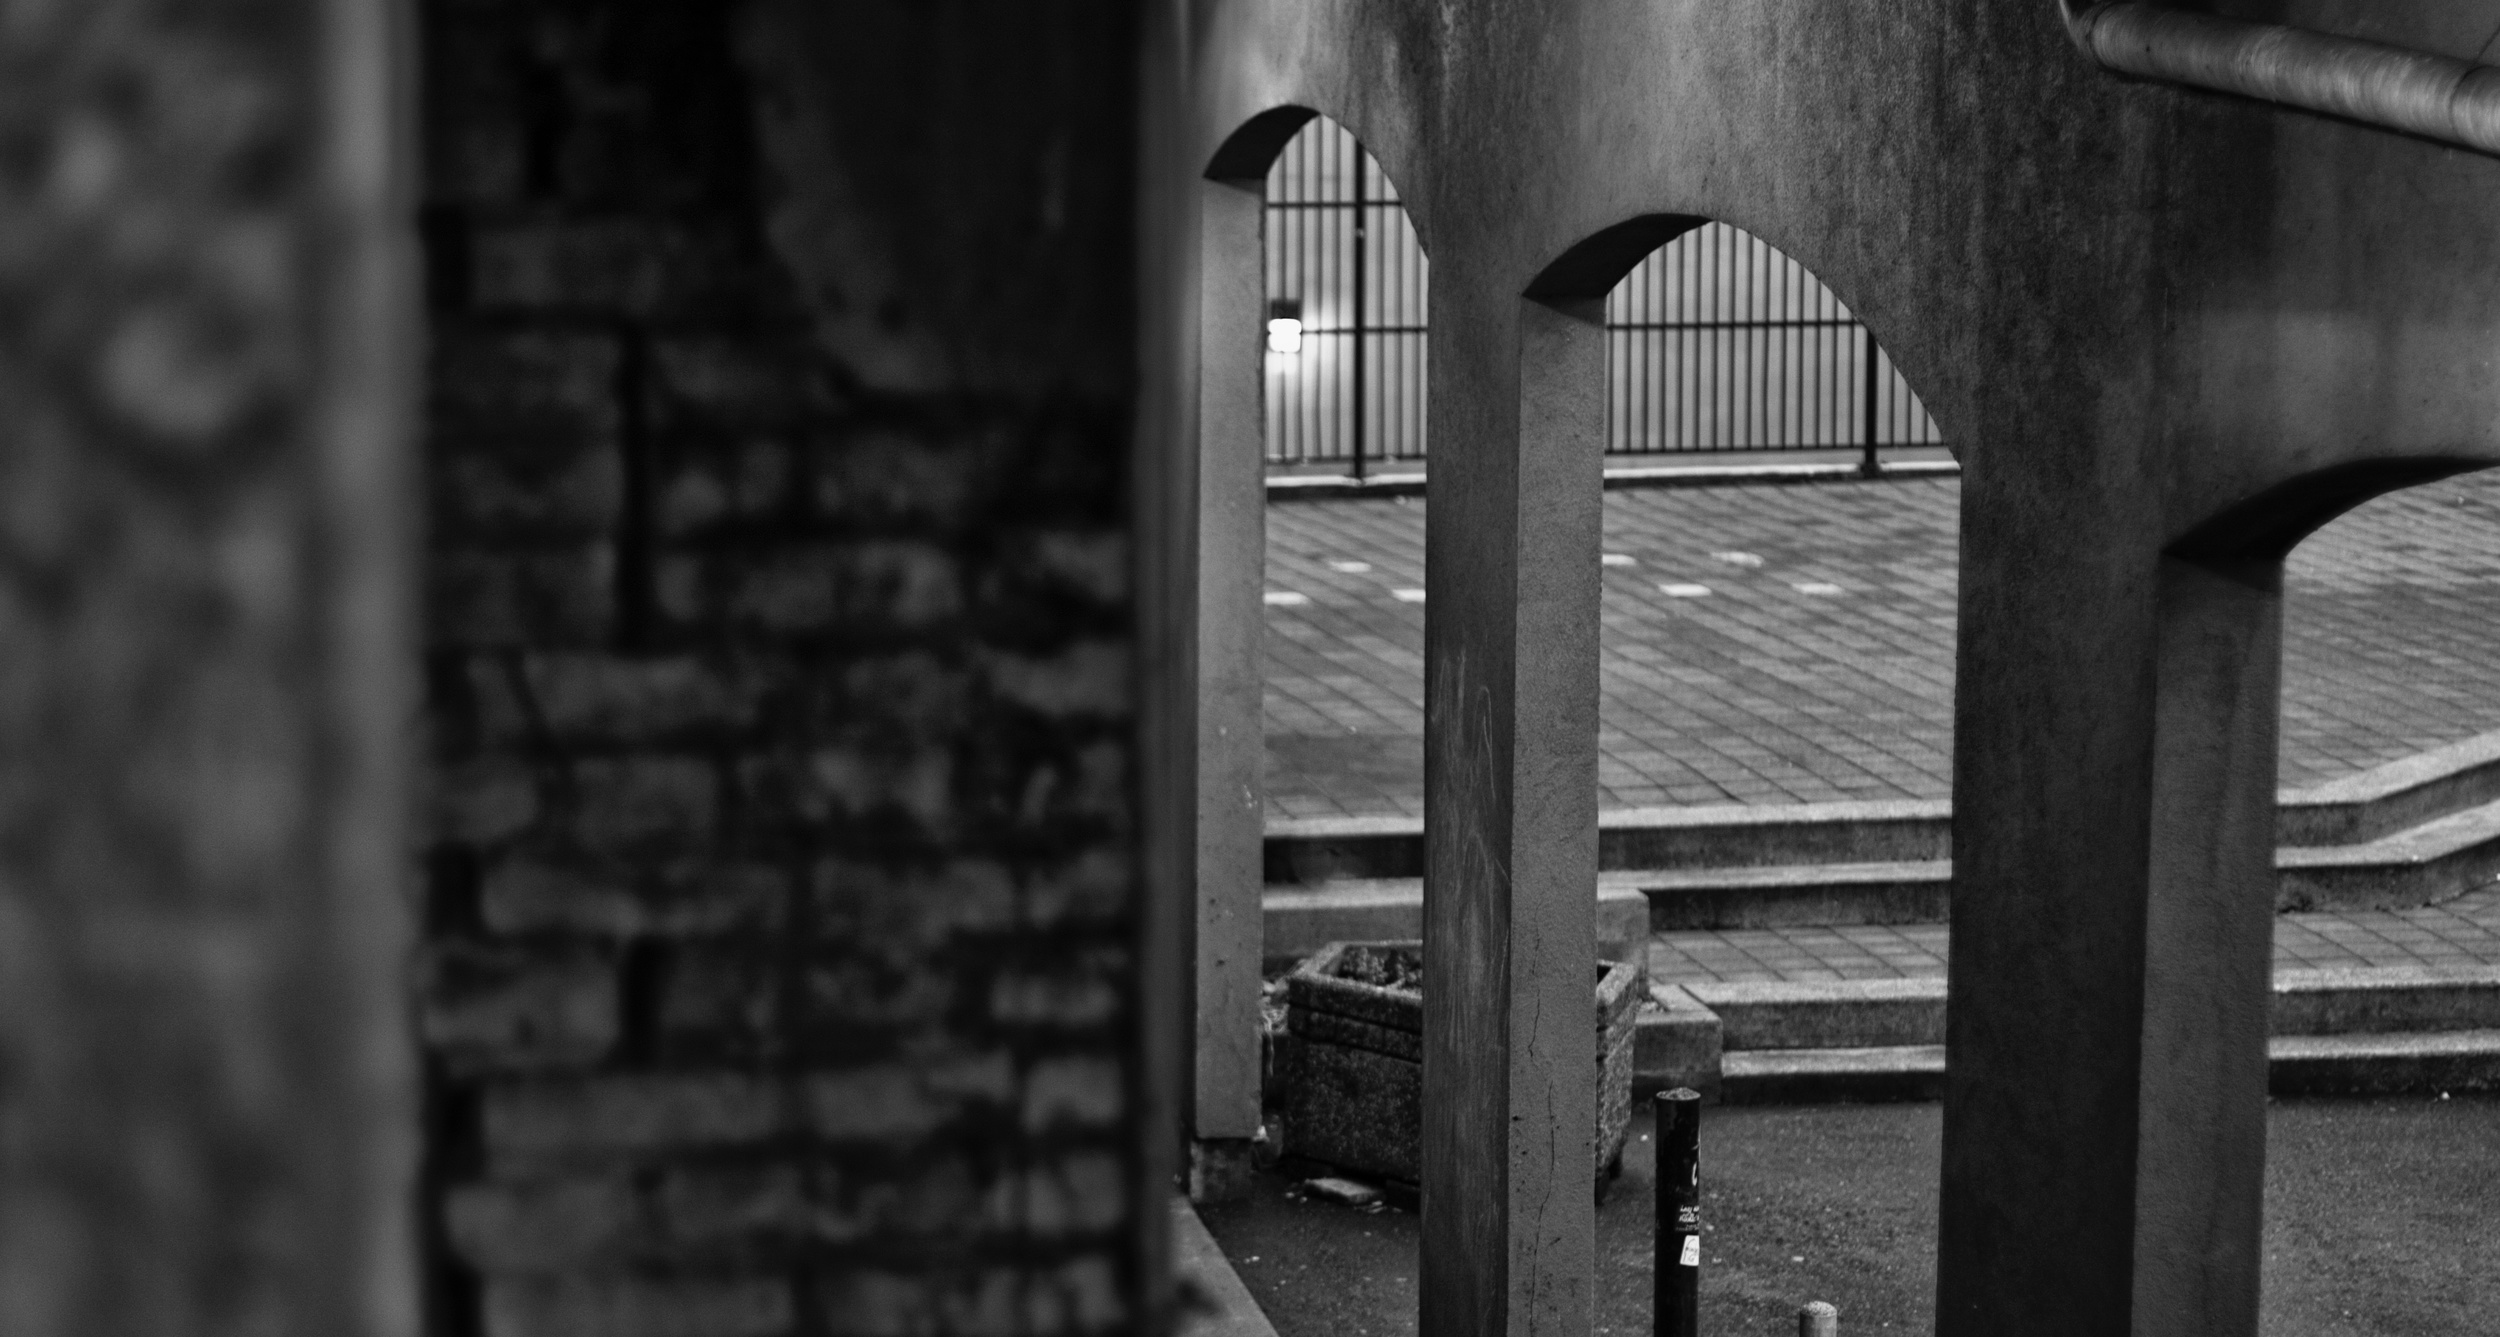 2015-01-17 at 08-21-04 Architecture, Black & White, Fence, Layers, Pillars, Street Life, Structure.jpg